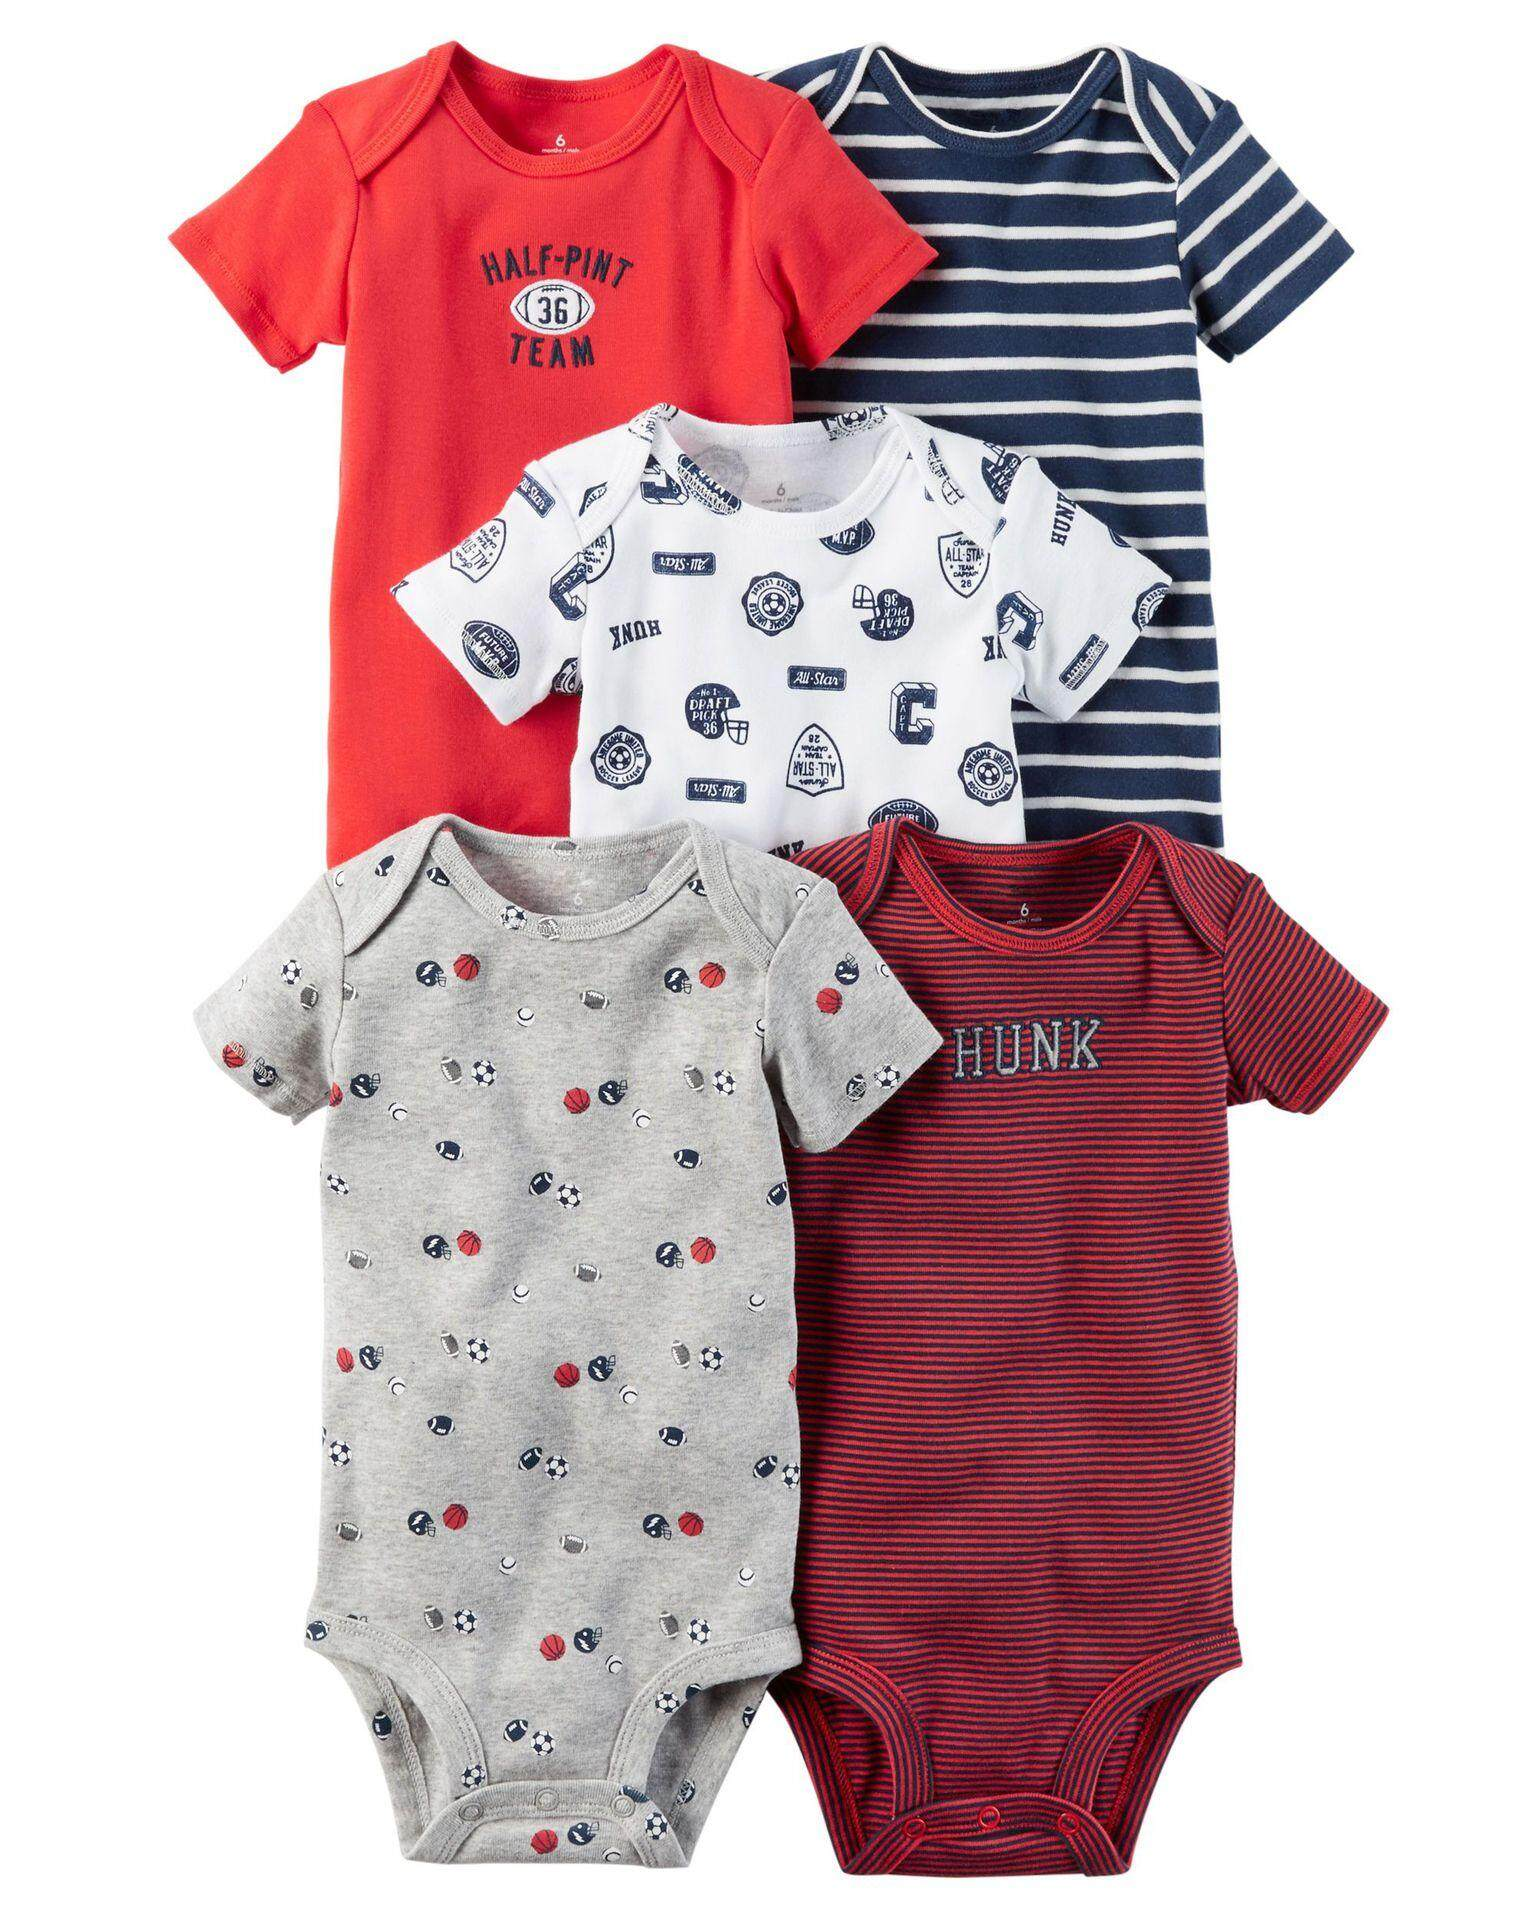 cb1d6fb6e 5PCS Set Summer Baby Clothes Baby Girl Clothes Sets Short Sleeve Cotton  Printed Rompers Baby Rompers